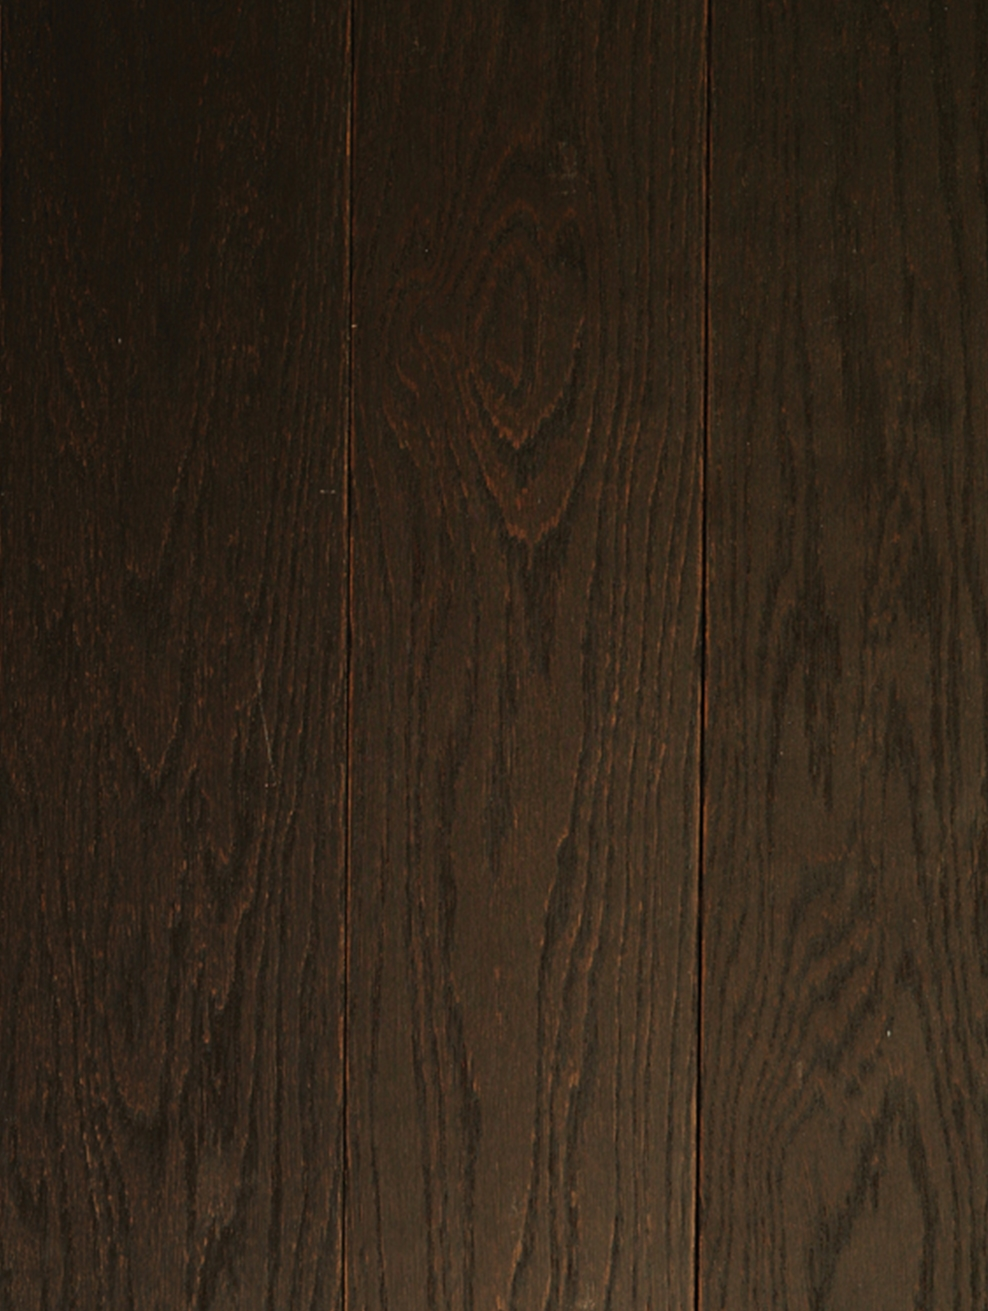 Select Harvest Red Oak Hardwood Flooring [Thermal-Treated, Princeton Finish]